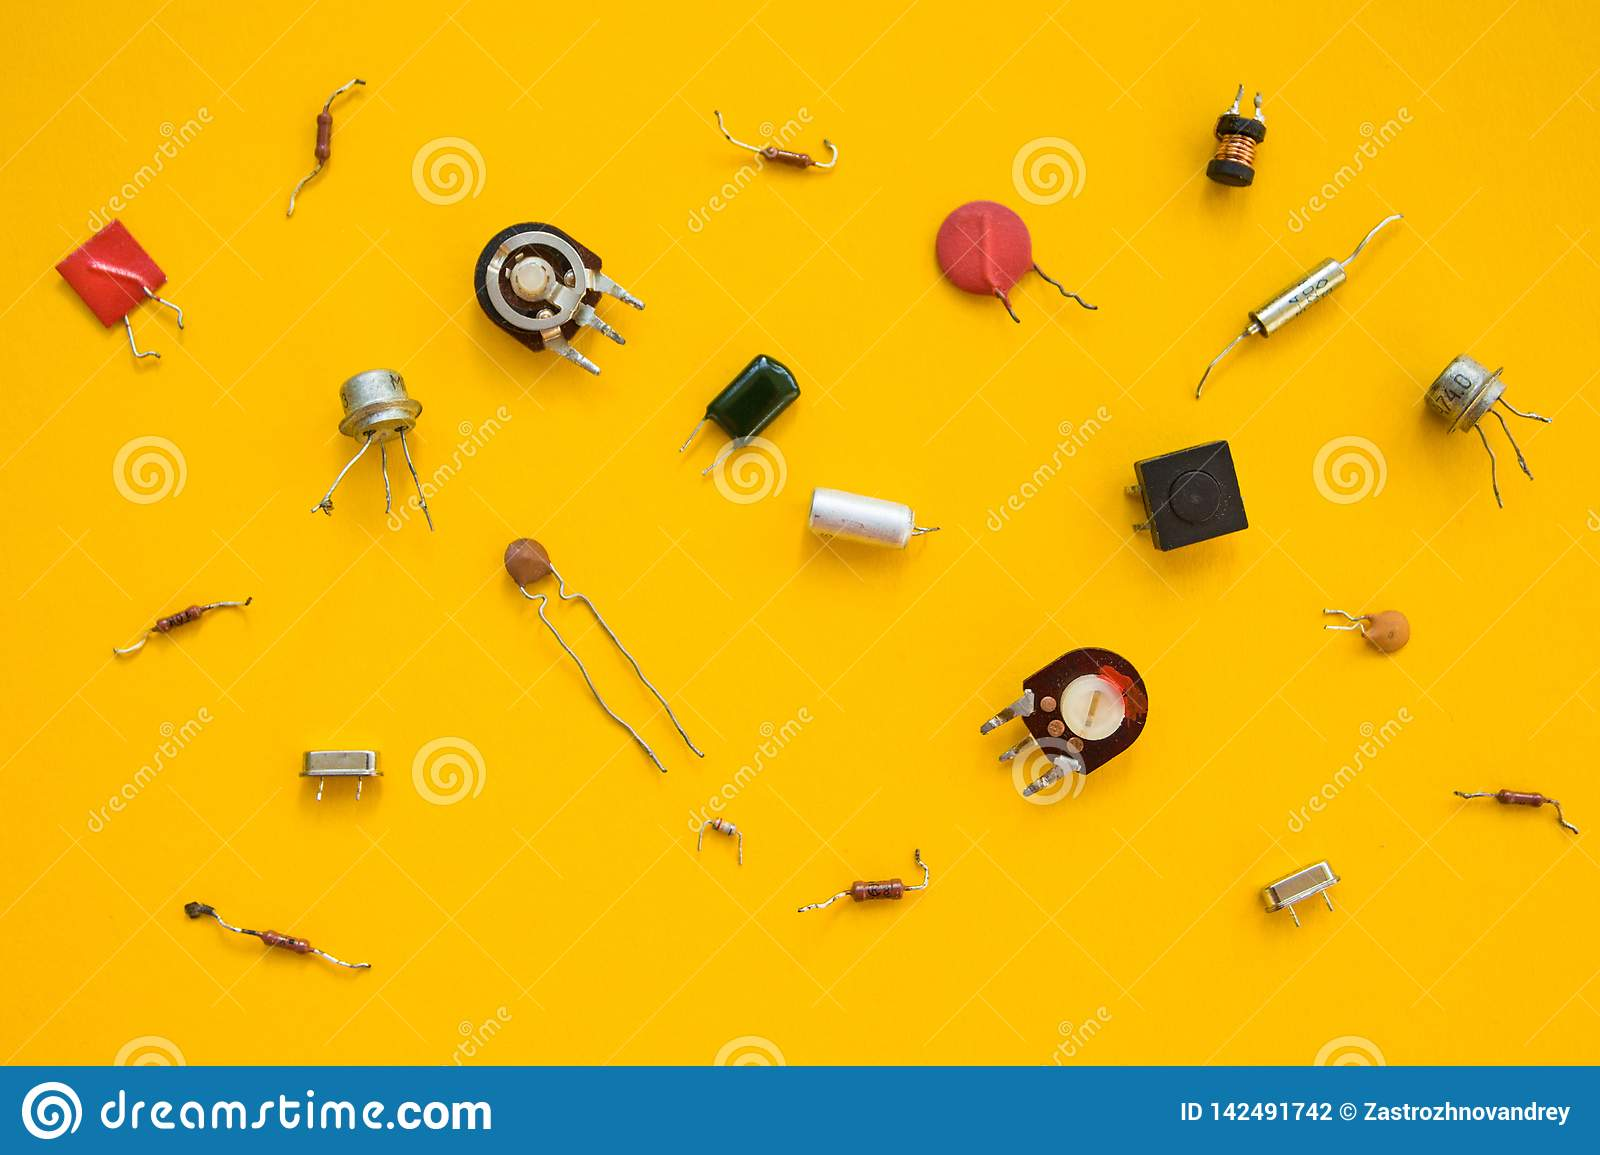 Retro electronic components  in yellow background, concept. The flat composition